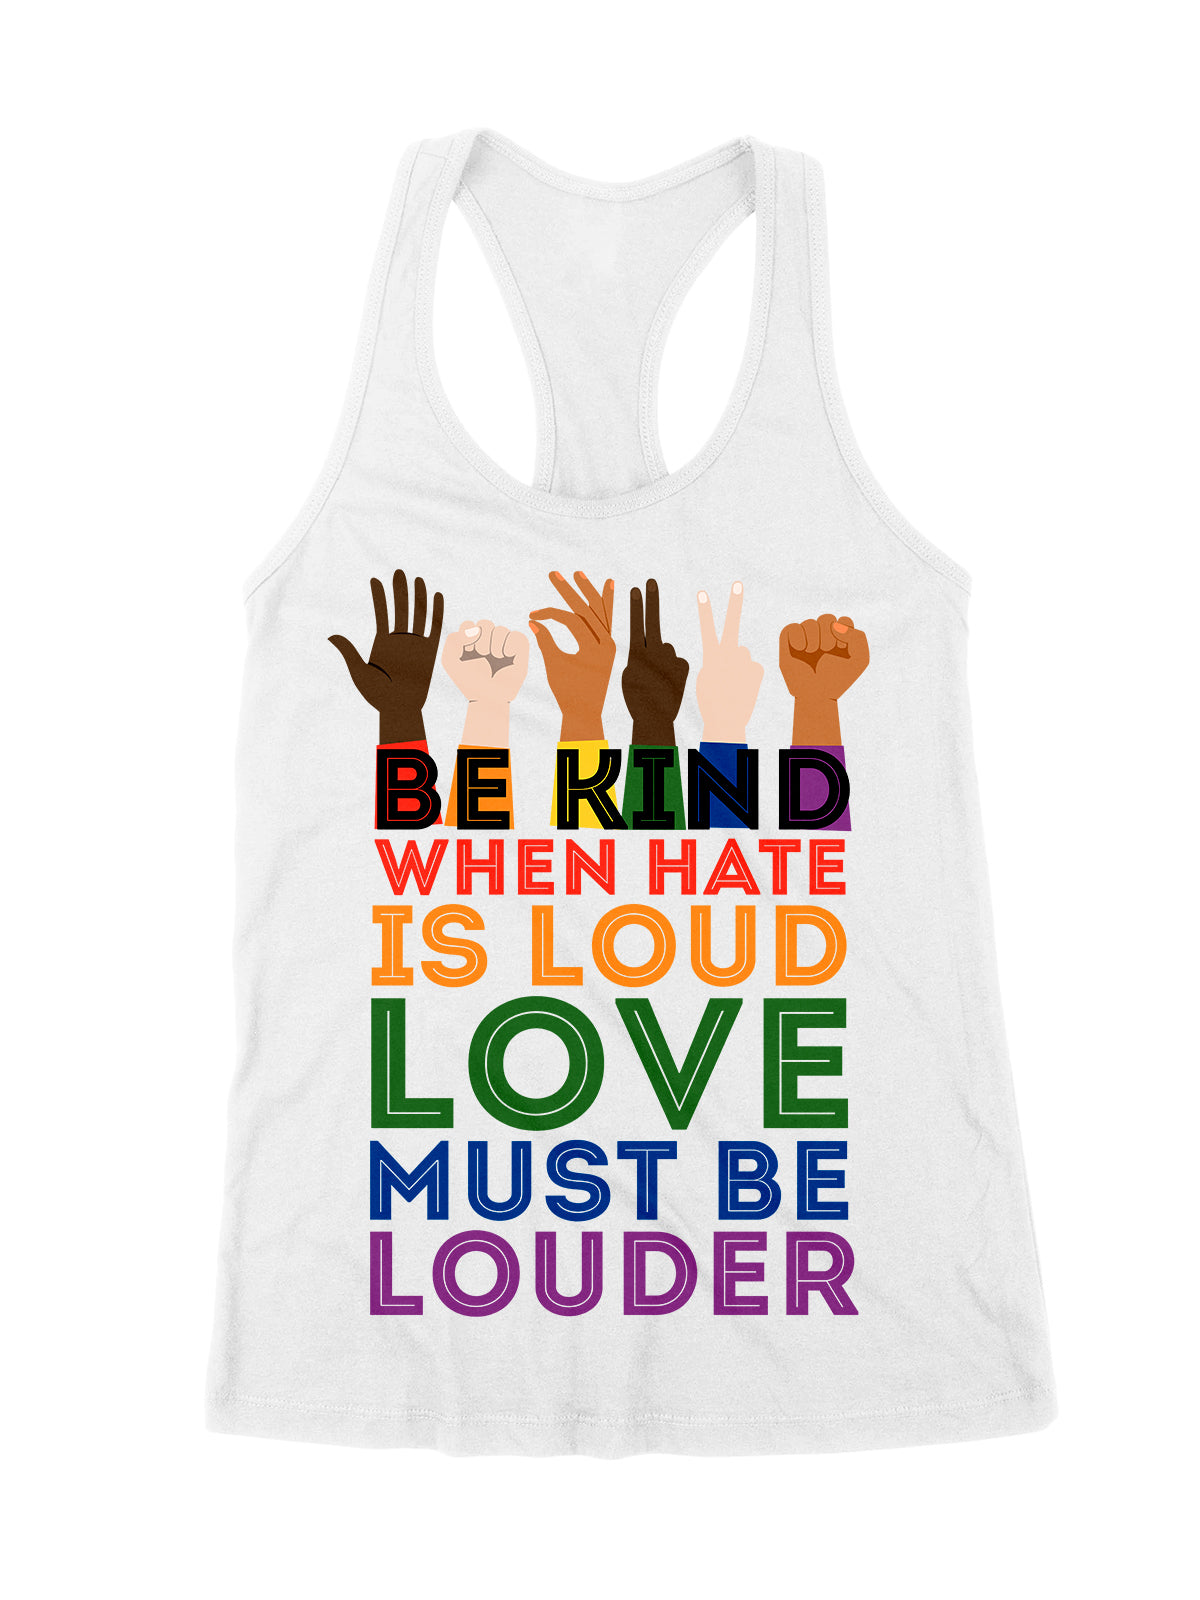 Standard Tank Top - Be kind - Love is Love - Black Lives Matter - Rainbow Tank Top - 2295